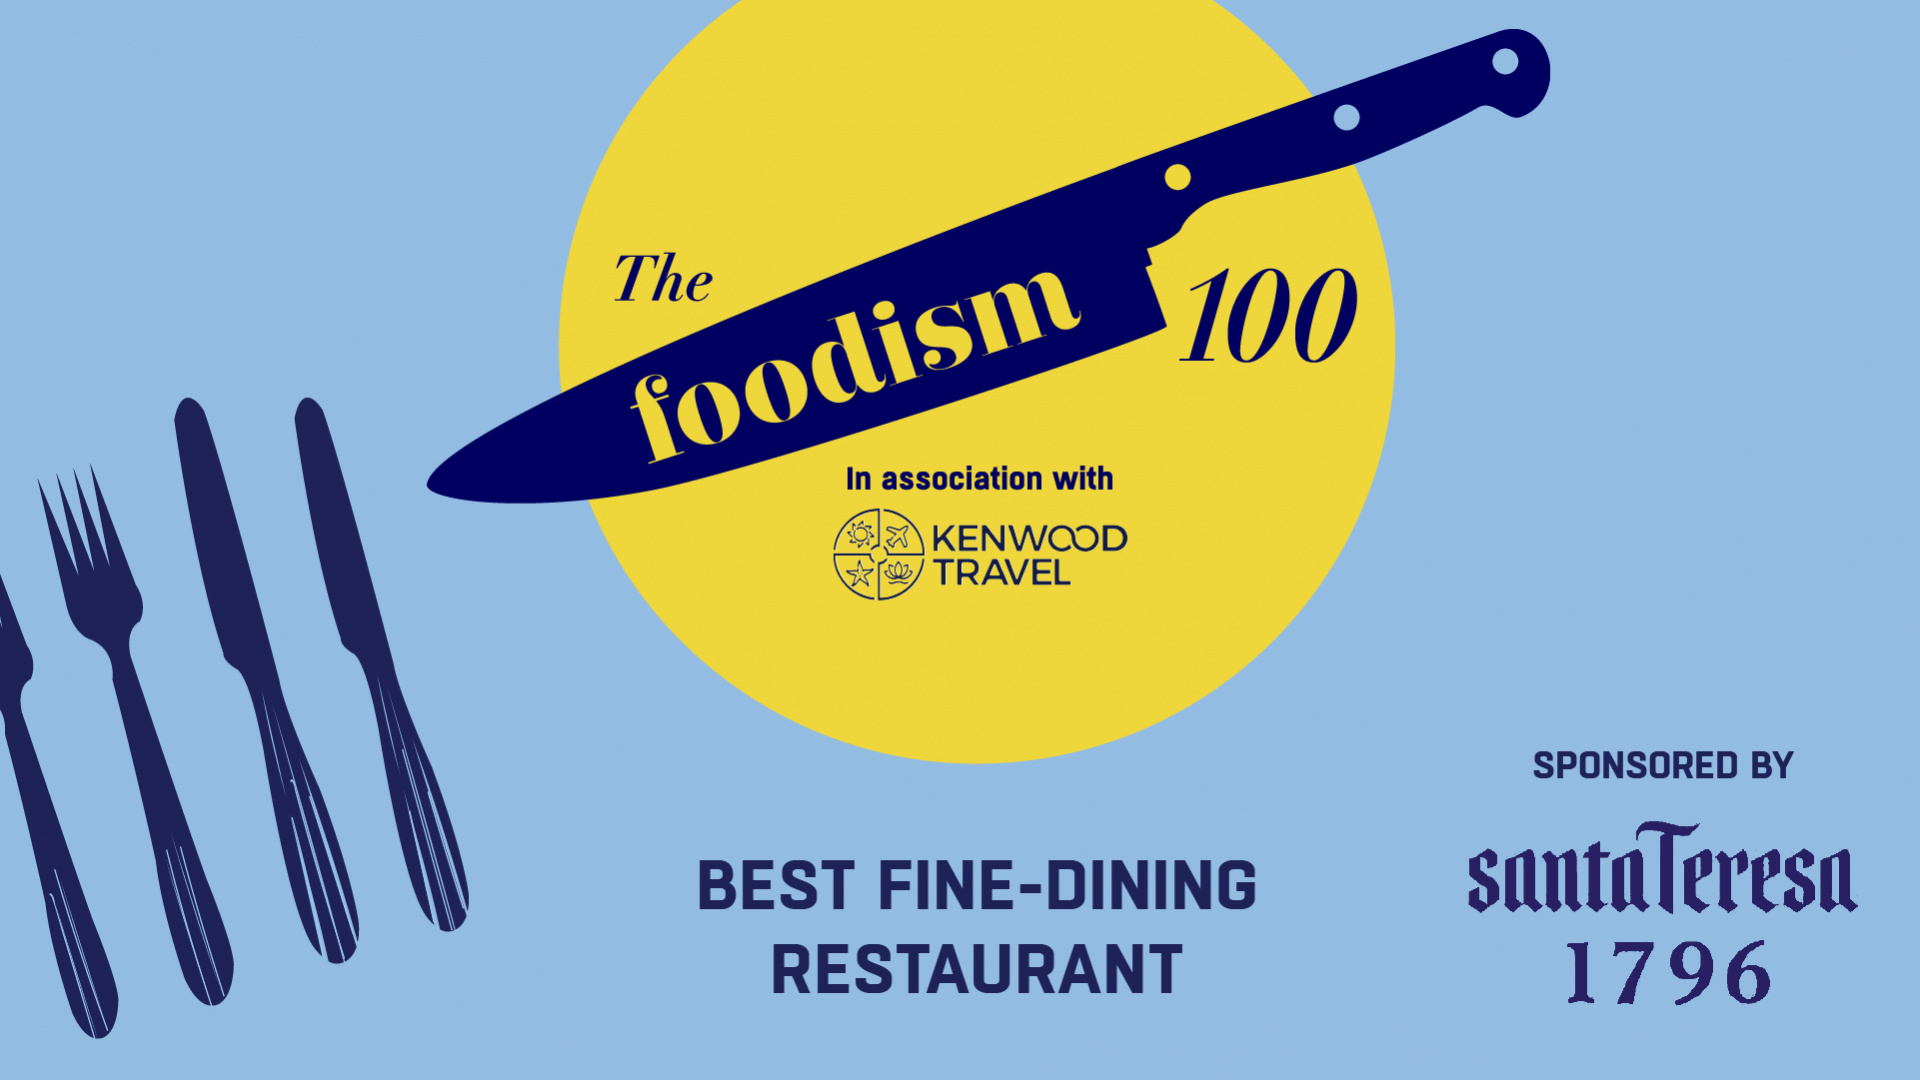 The Foodism 100: Best Fine-Dining Restaurant 2019